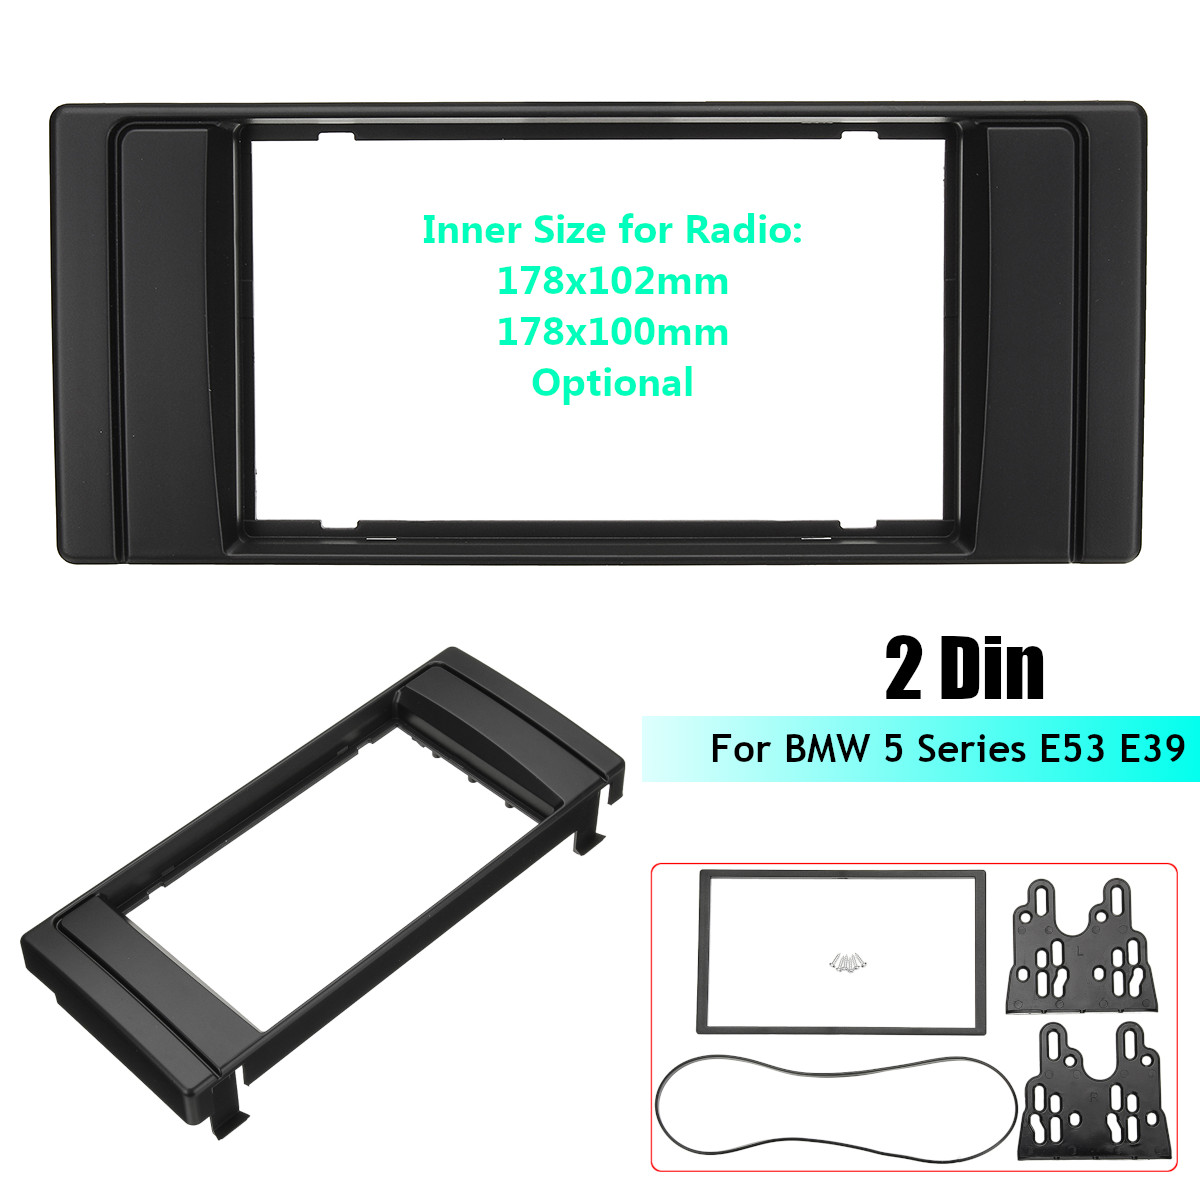 178 x 102mm/178 x 100mm 2 Din Car Stereo Radio Fascia Panel Plate Frame Dash Mount Kit Adapter for BMW 5 Series E53 E39 2 din car radio stereo fascia panel frame dvd dash installation kit for ssang yong tivoli 2015 with 178 102mm 173 98mm